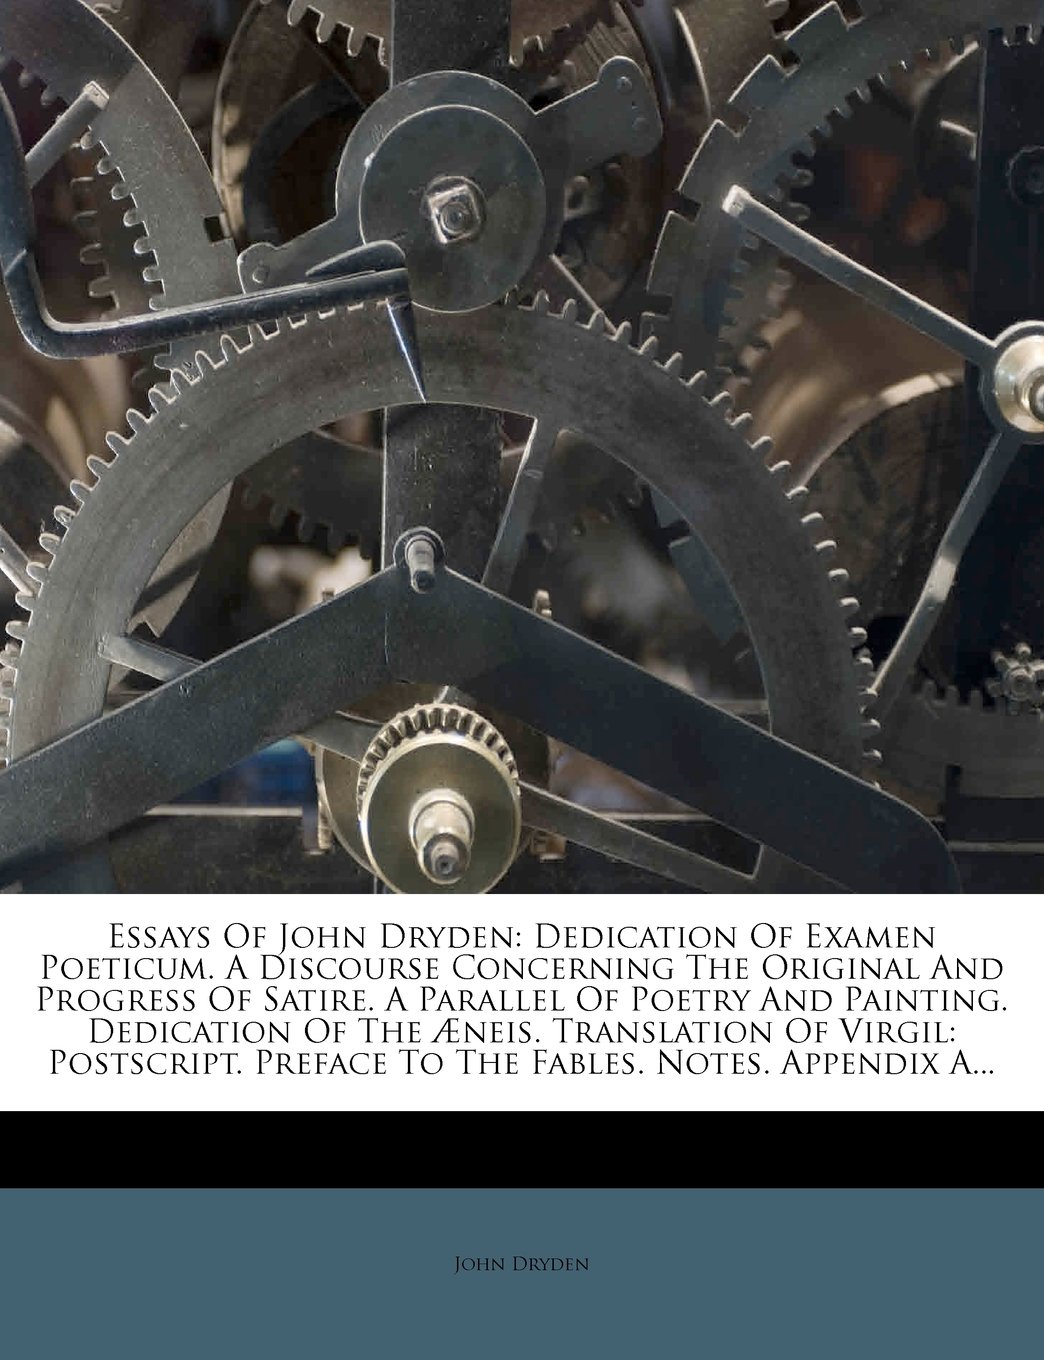 Read Online Essays Of John Dryden: Dedication Of Examen Poeticum. A Discourse Concerning The Original And Progress Of Satire. A Parallel Of Poetry And Painting. ... Preface To The Fables. Notes. Appendix A... pdf epub